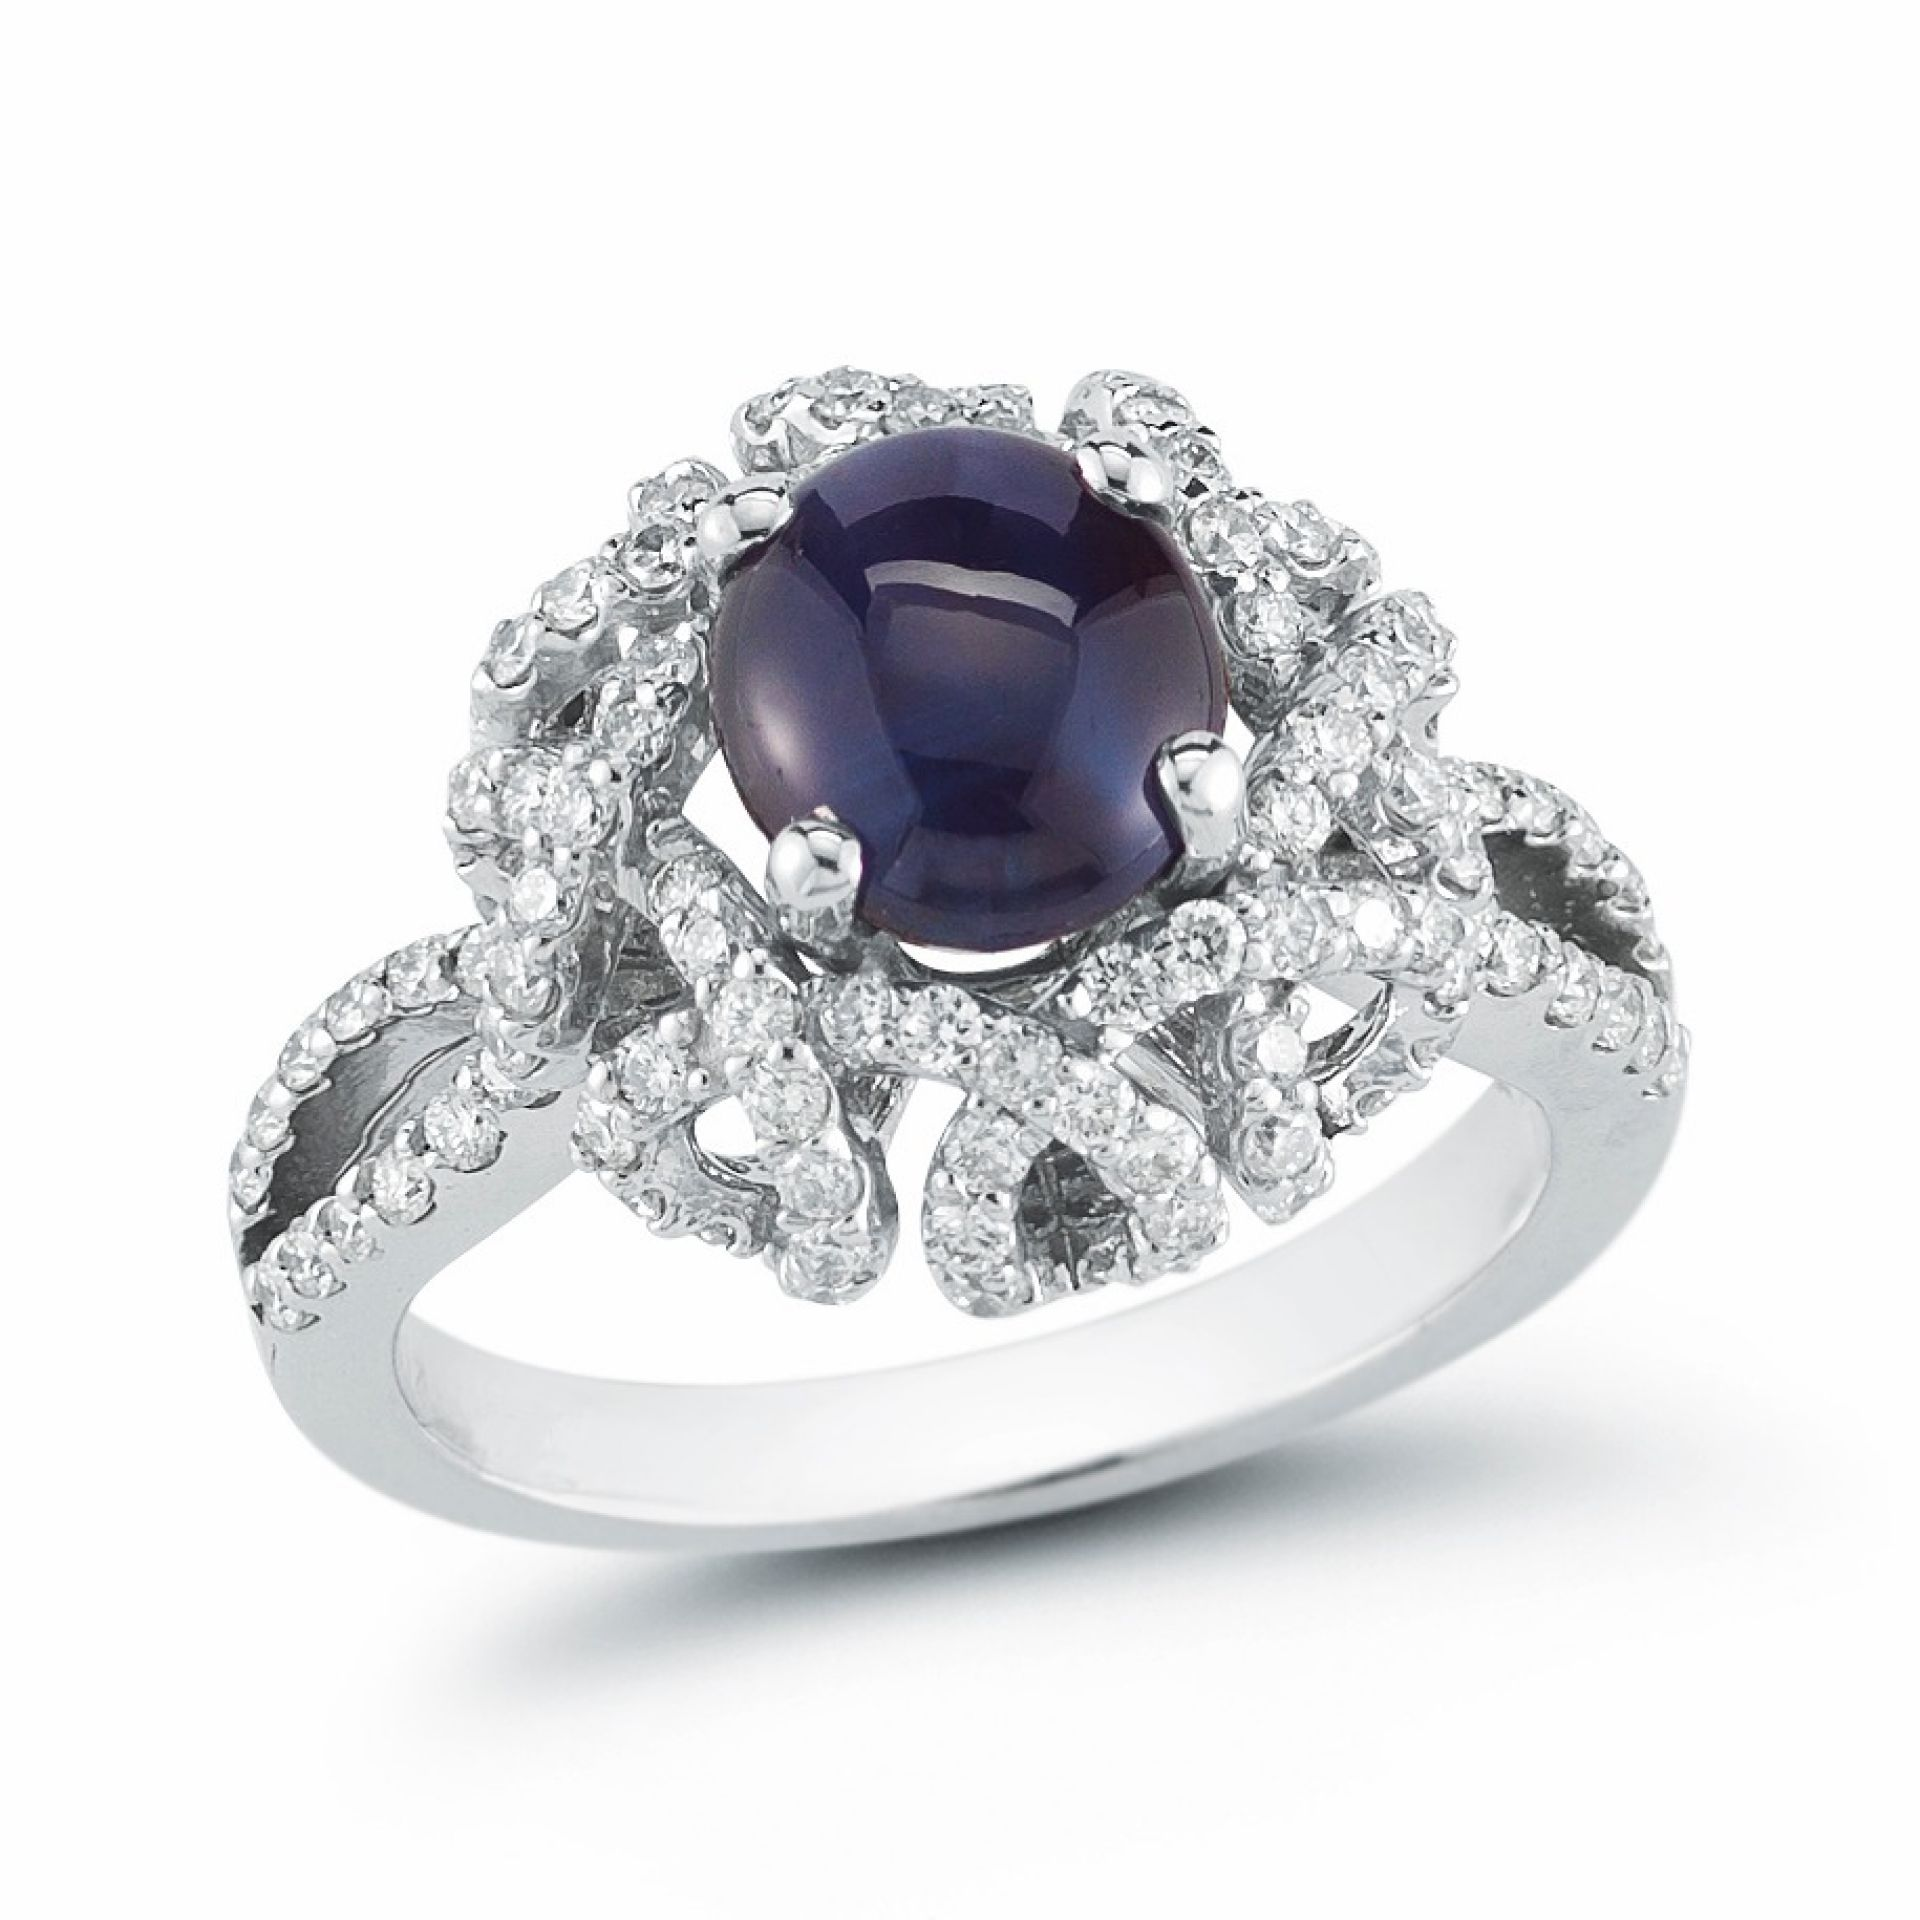 Cat's Eye Alexandrite and Diamond Ring R106564-1W